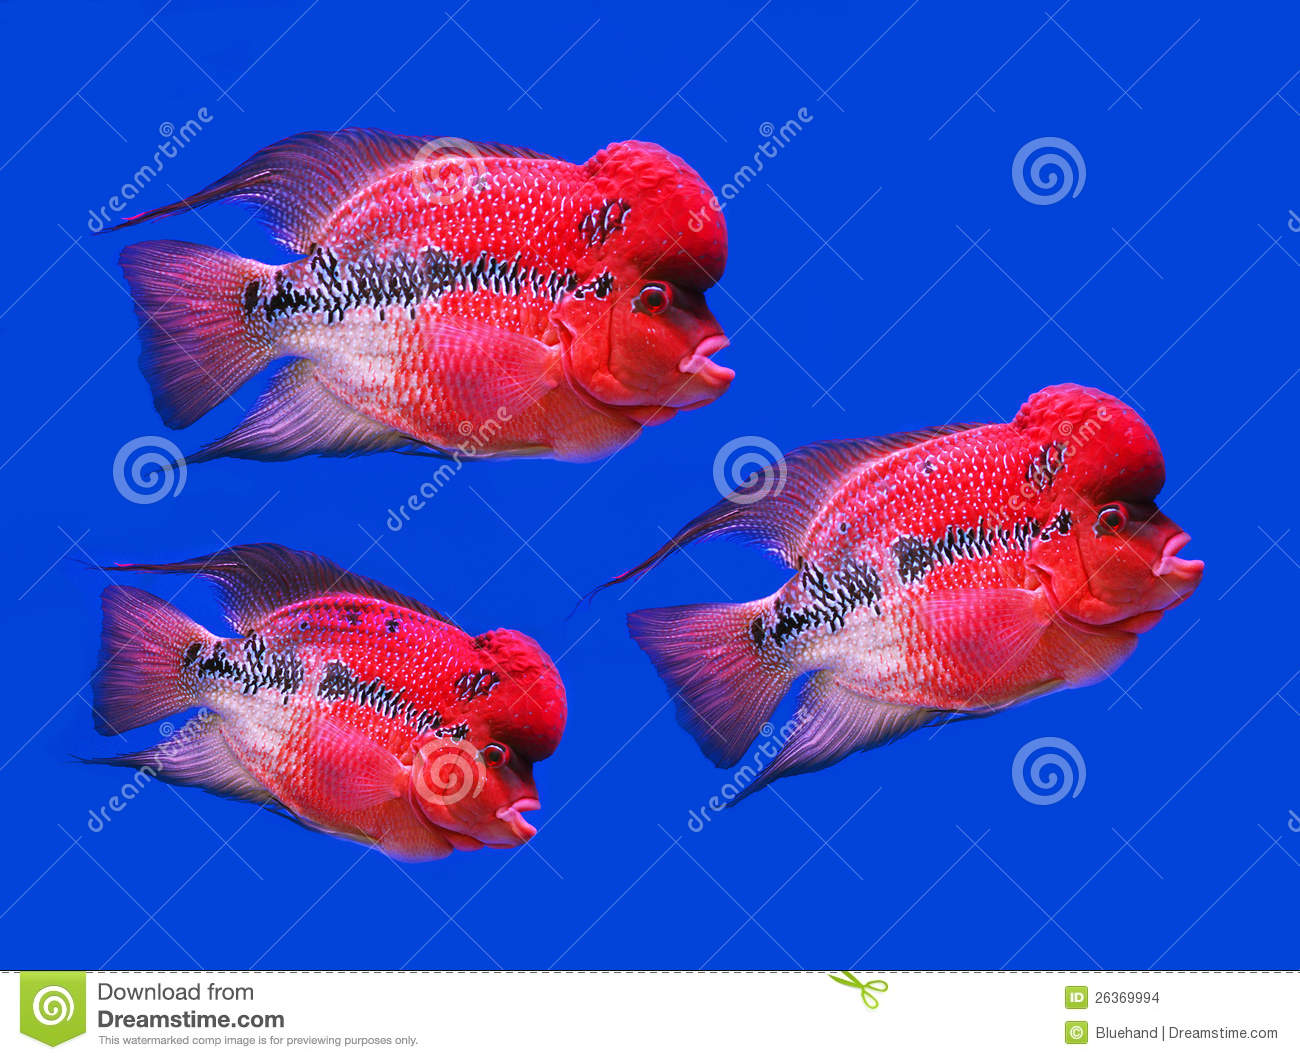 Reef fish blue tangflower horn fish on blue scree stock for Flower horn fish price